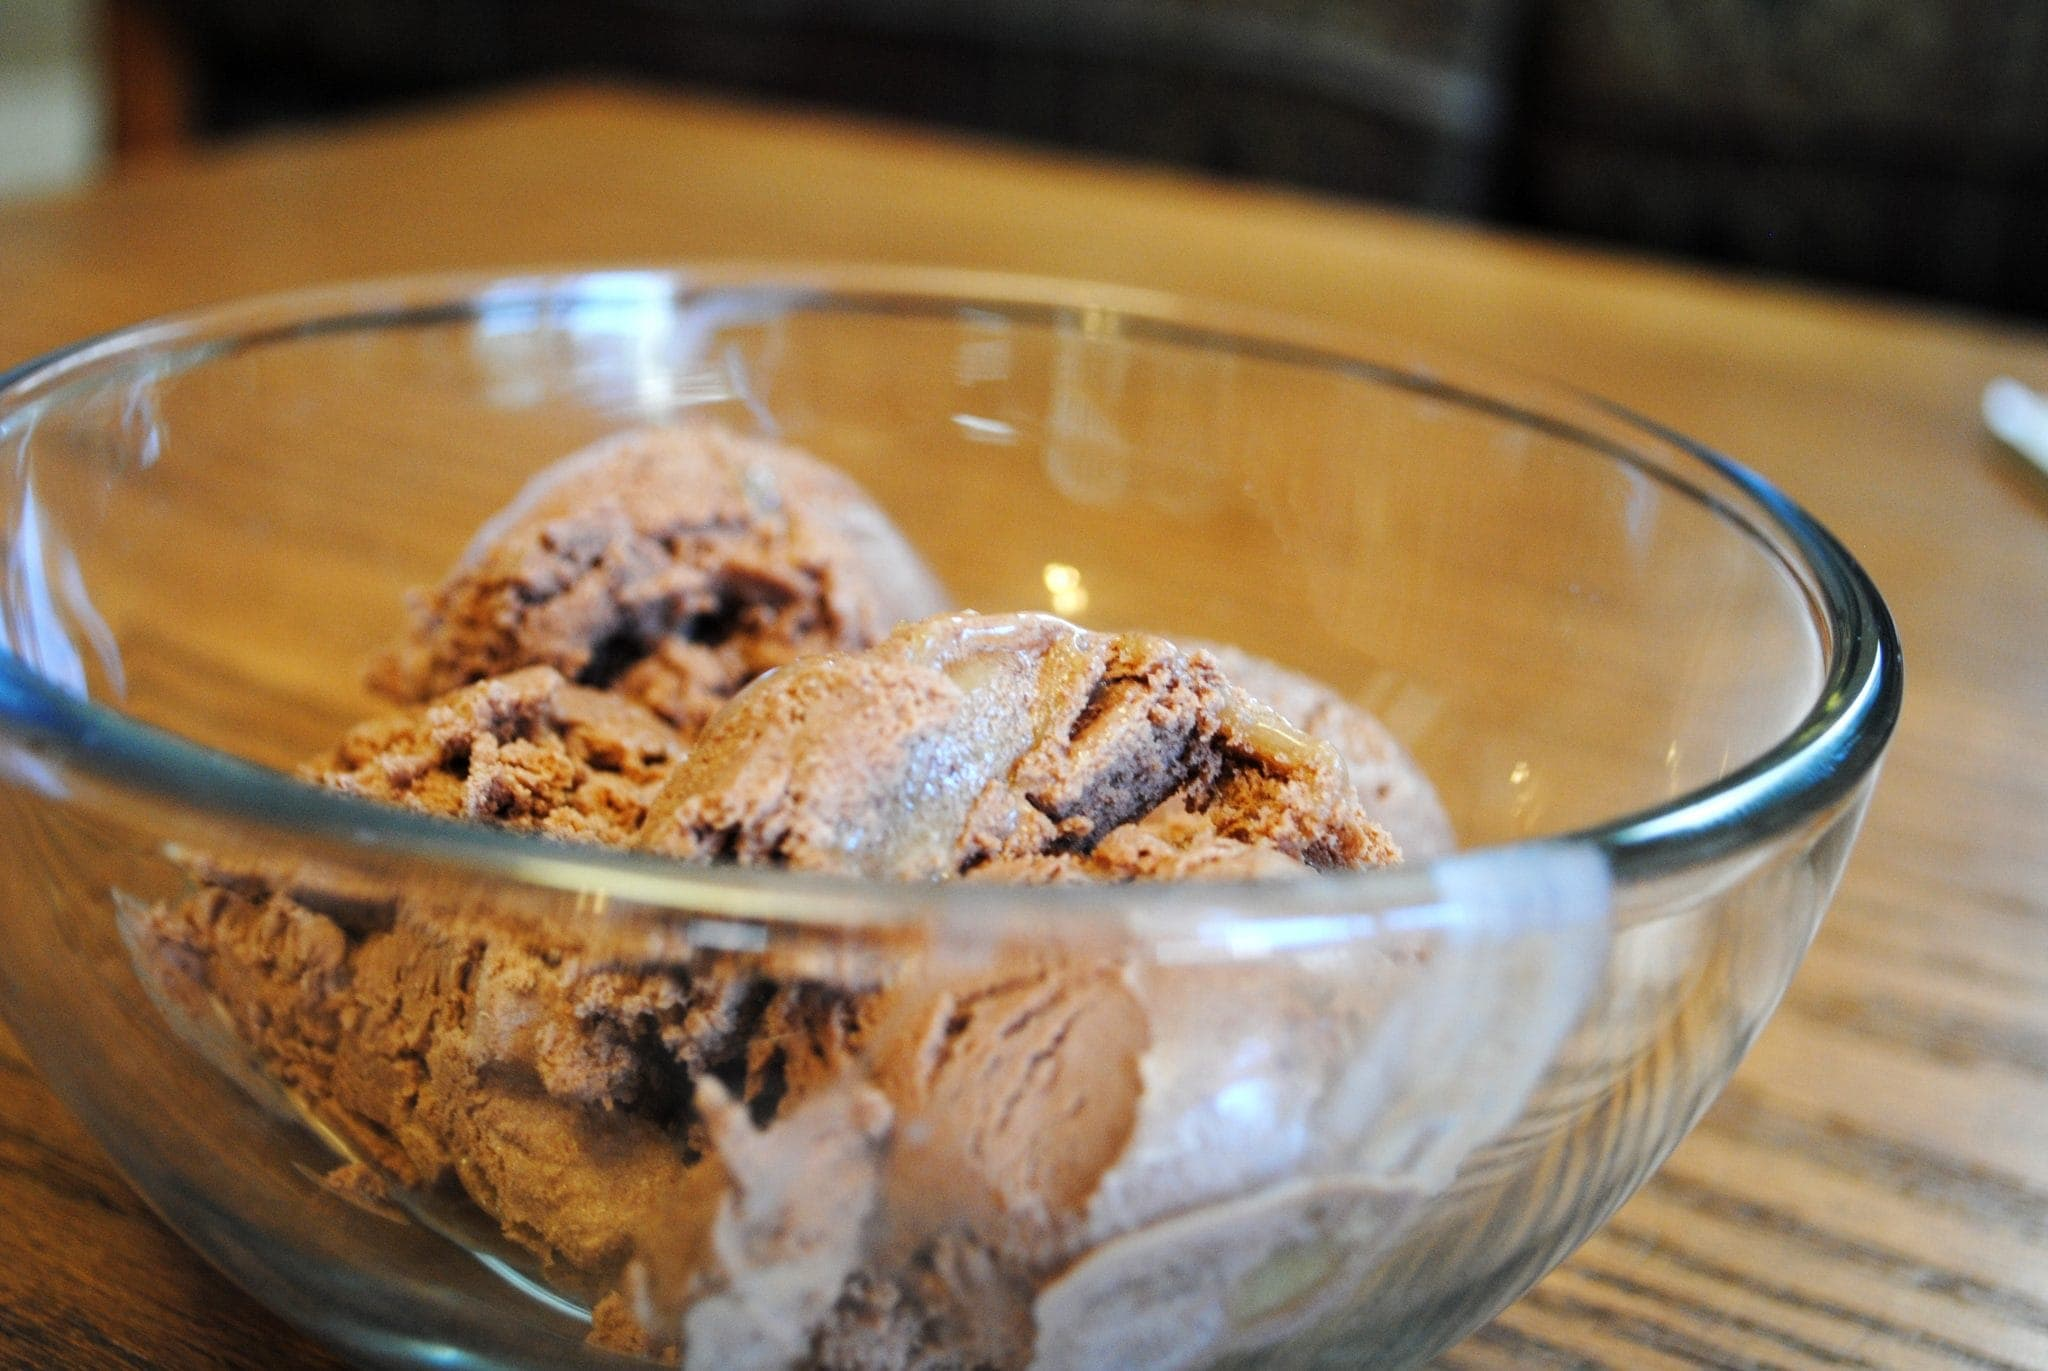 Homemade Chocolate Caramel Ice Cream